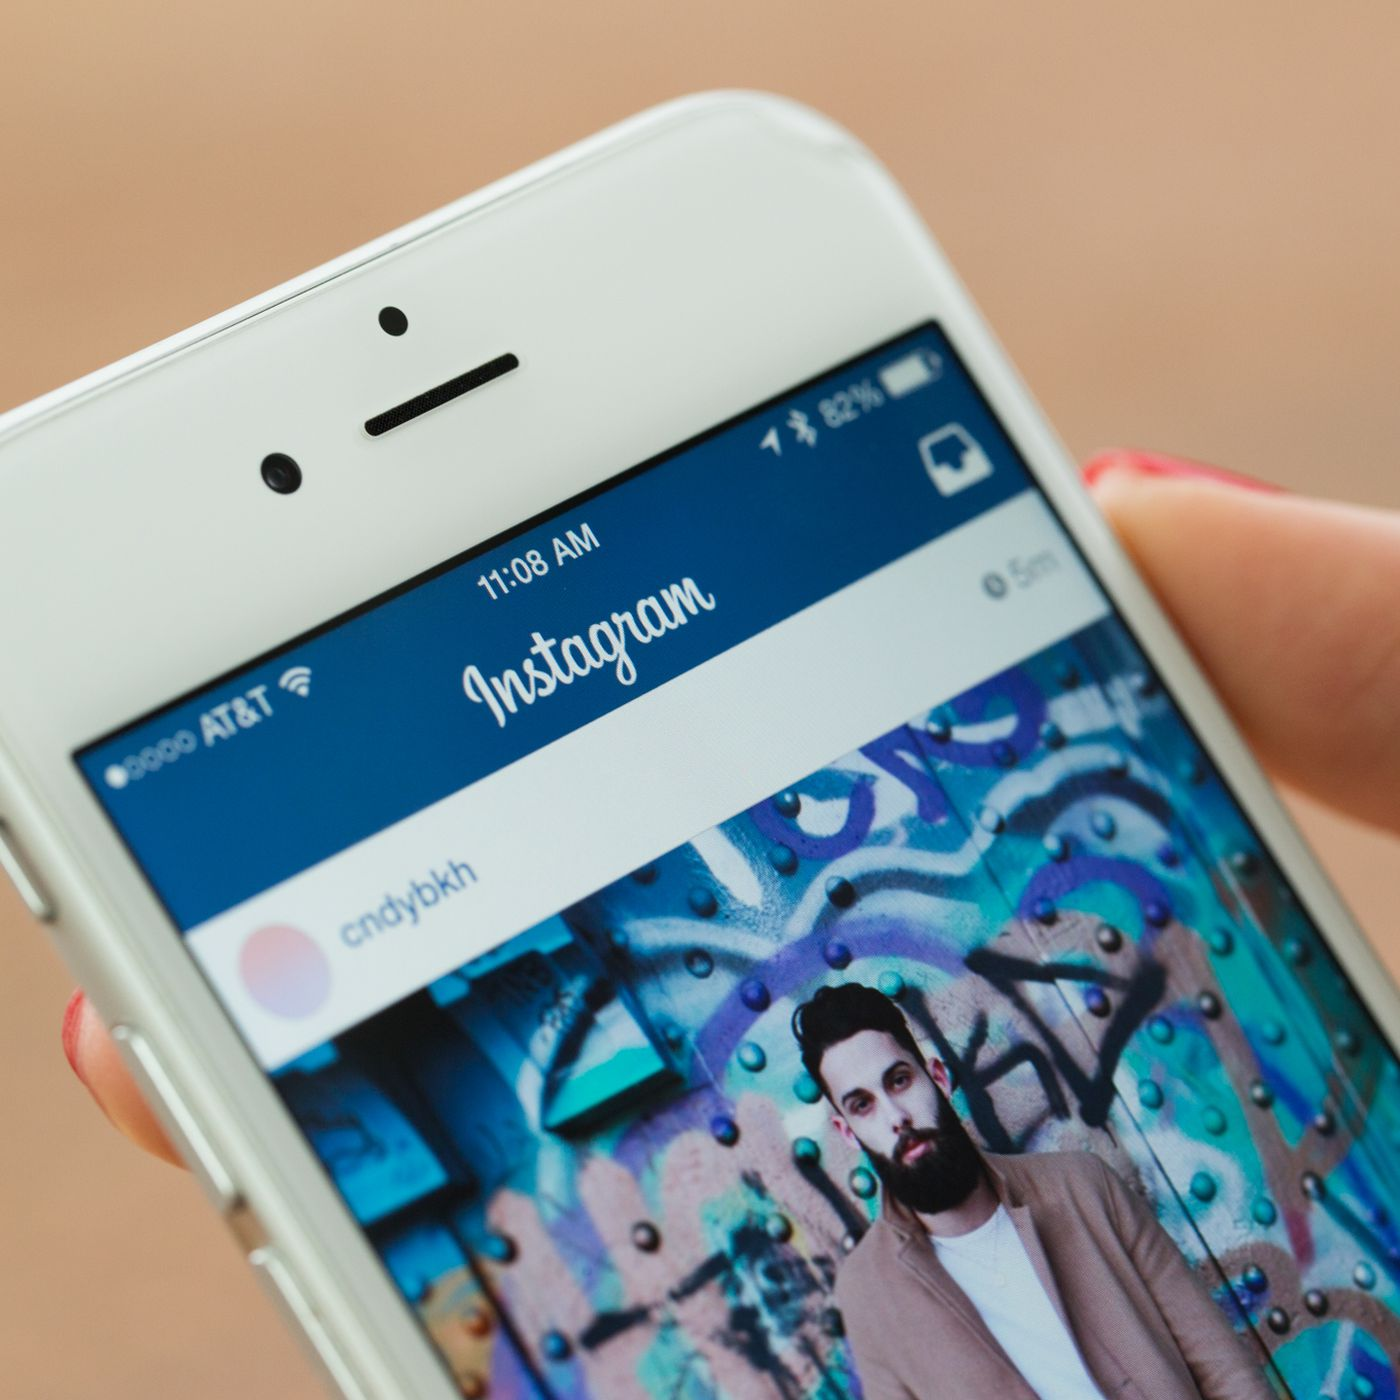 802a2be2131 An Instagram hack hit millions of accounts, and victims' phone ...